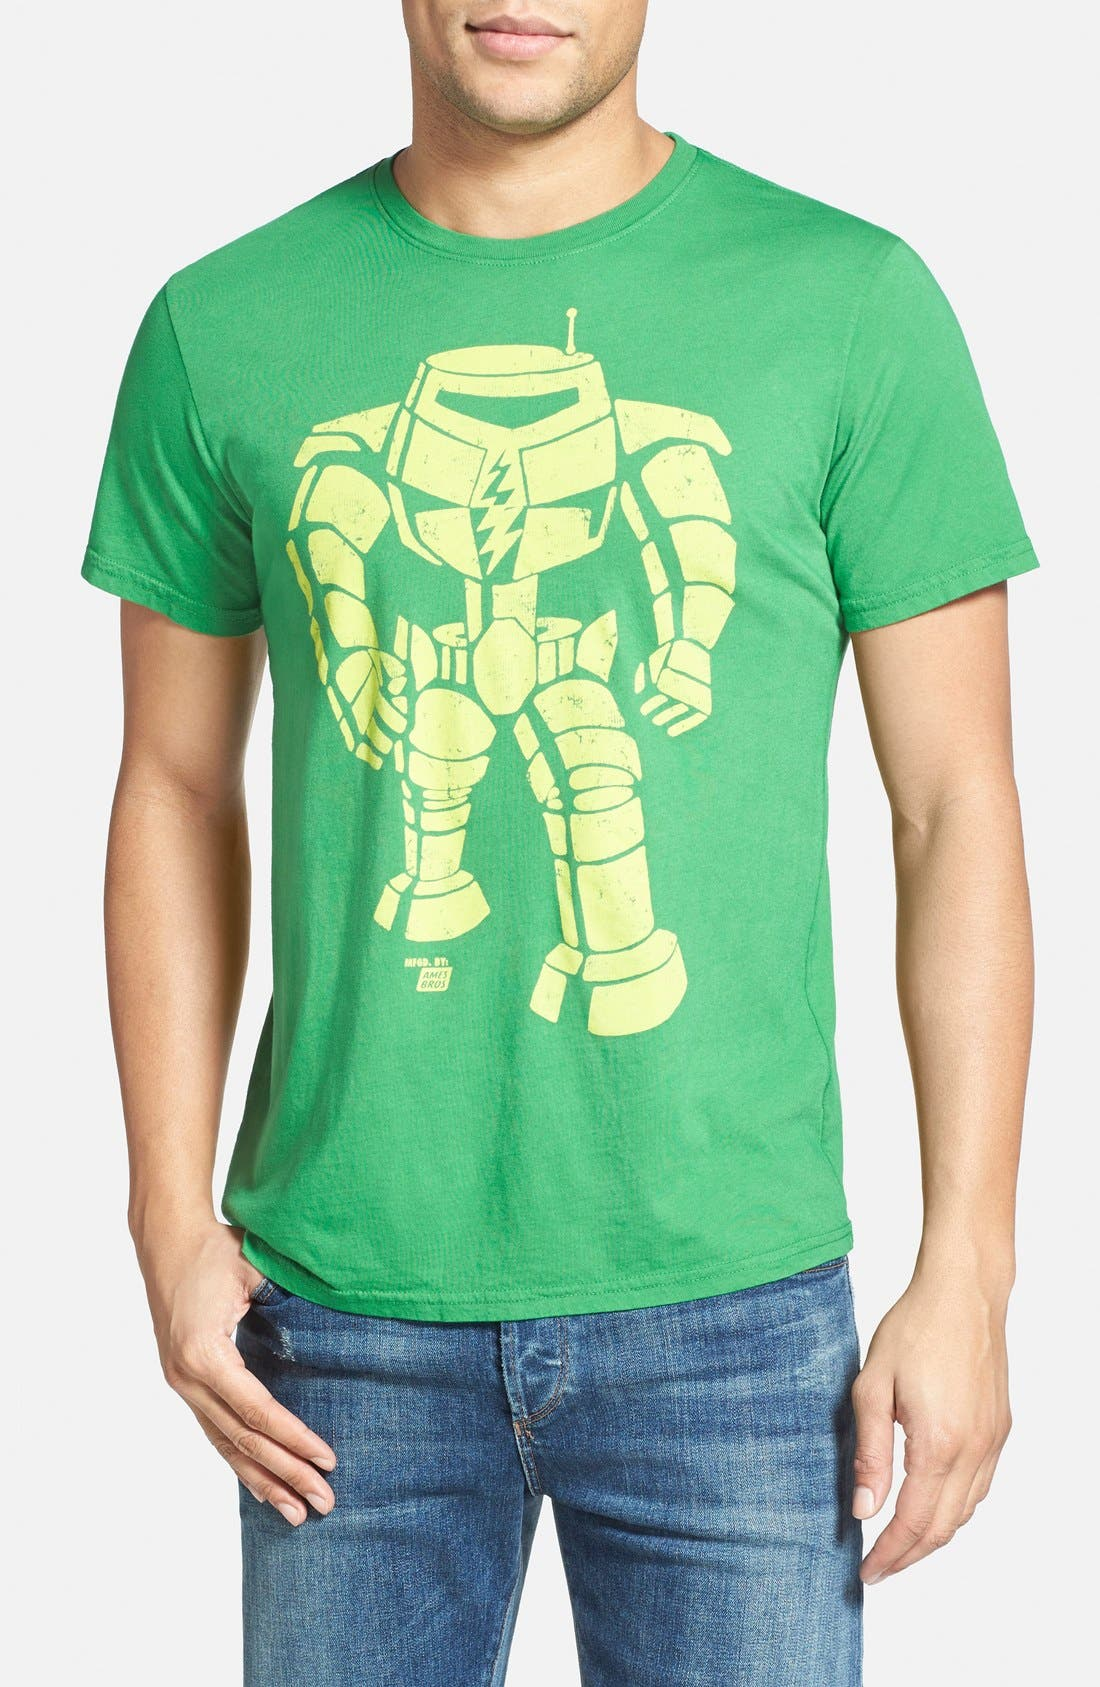 Alternate Image 1 Selected - Ames Bros 'Man-Bot' Graphic T-Shirt